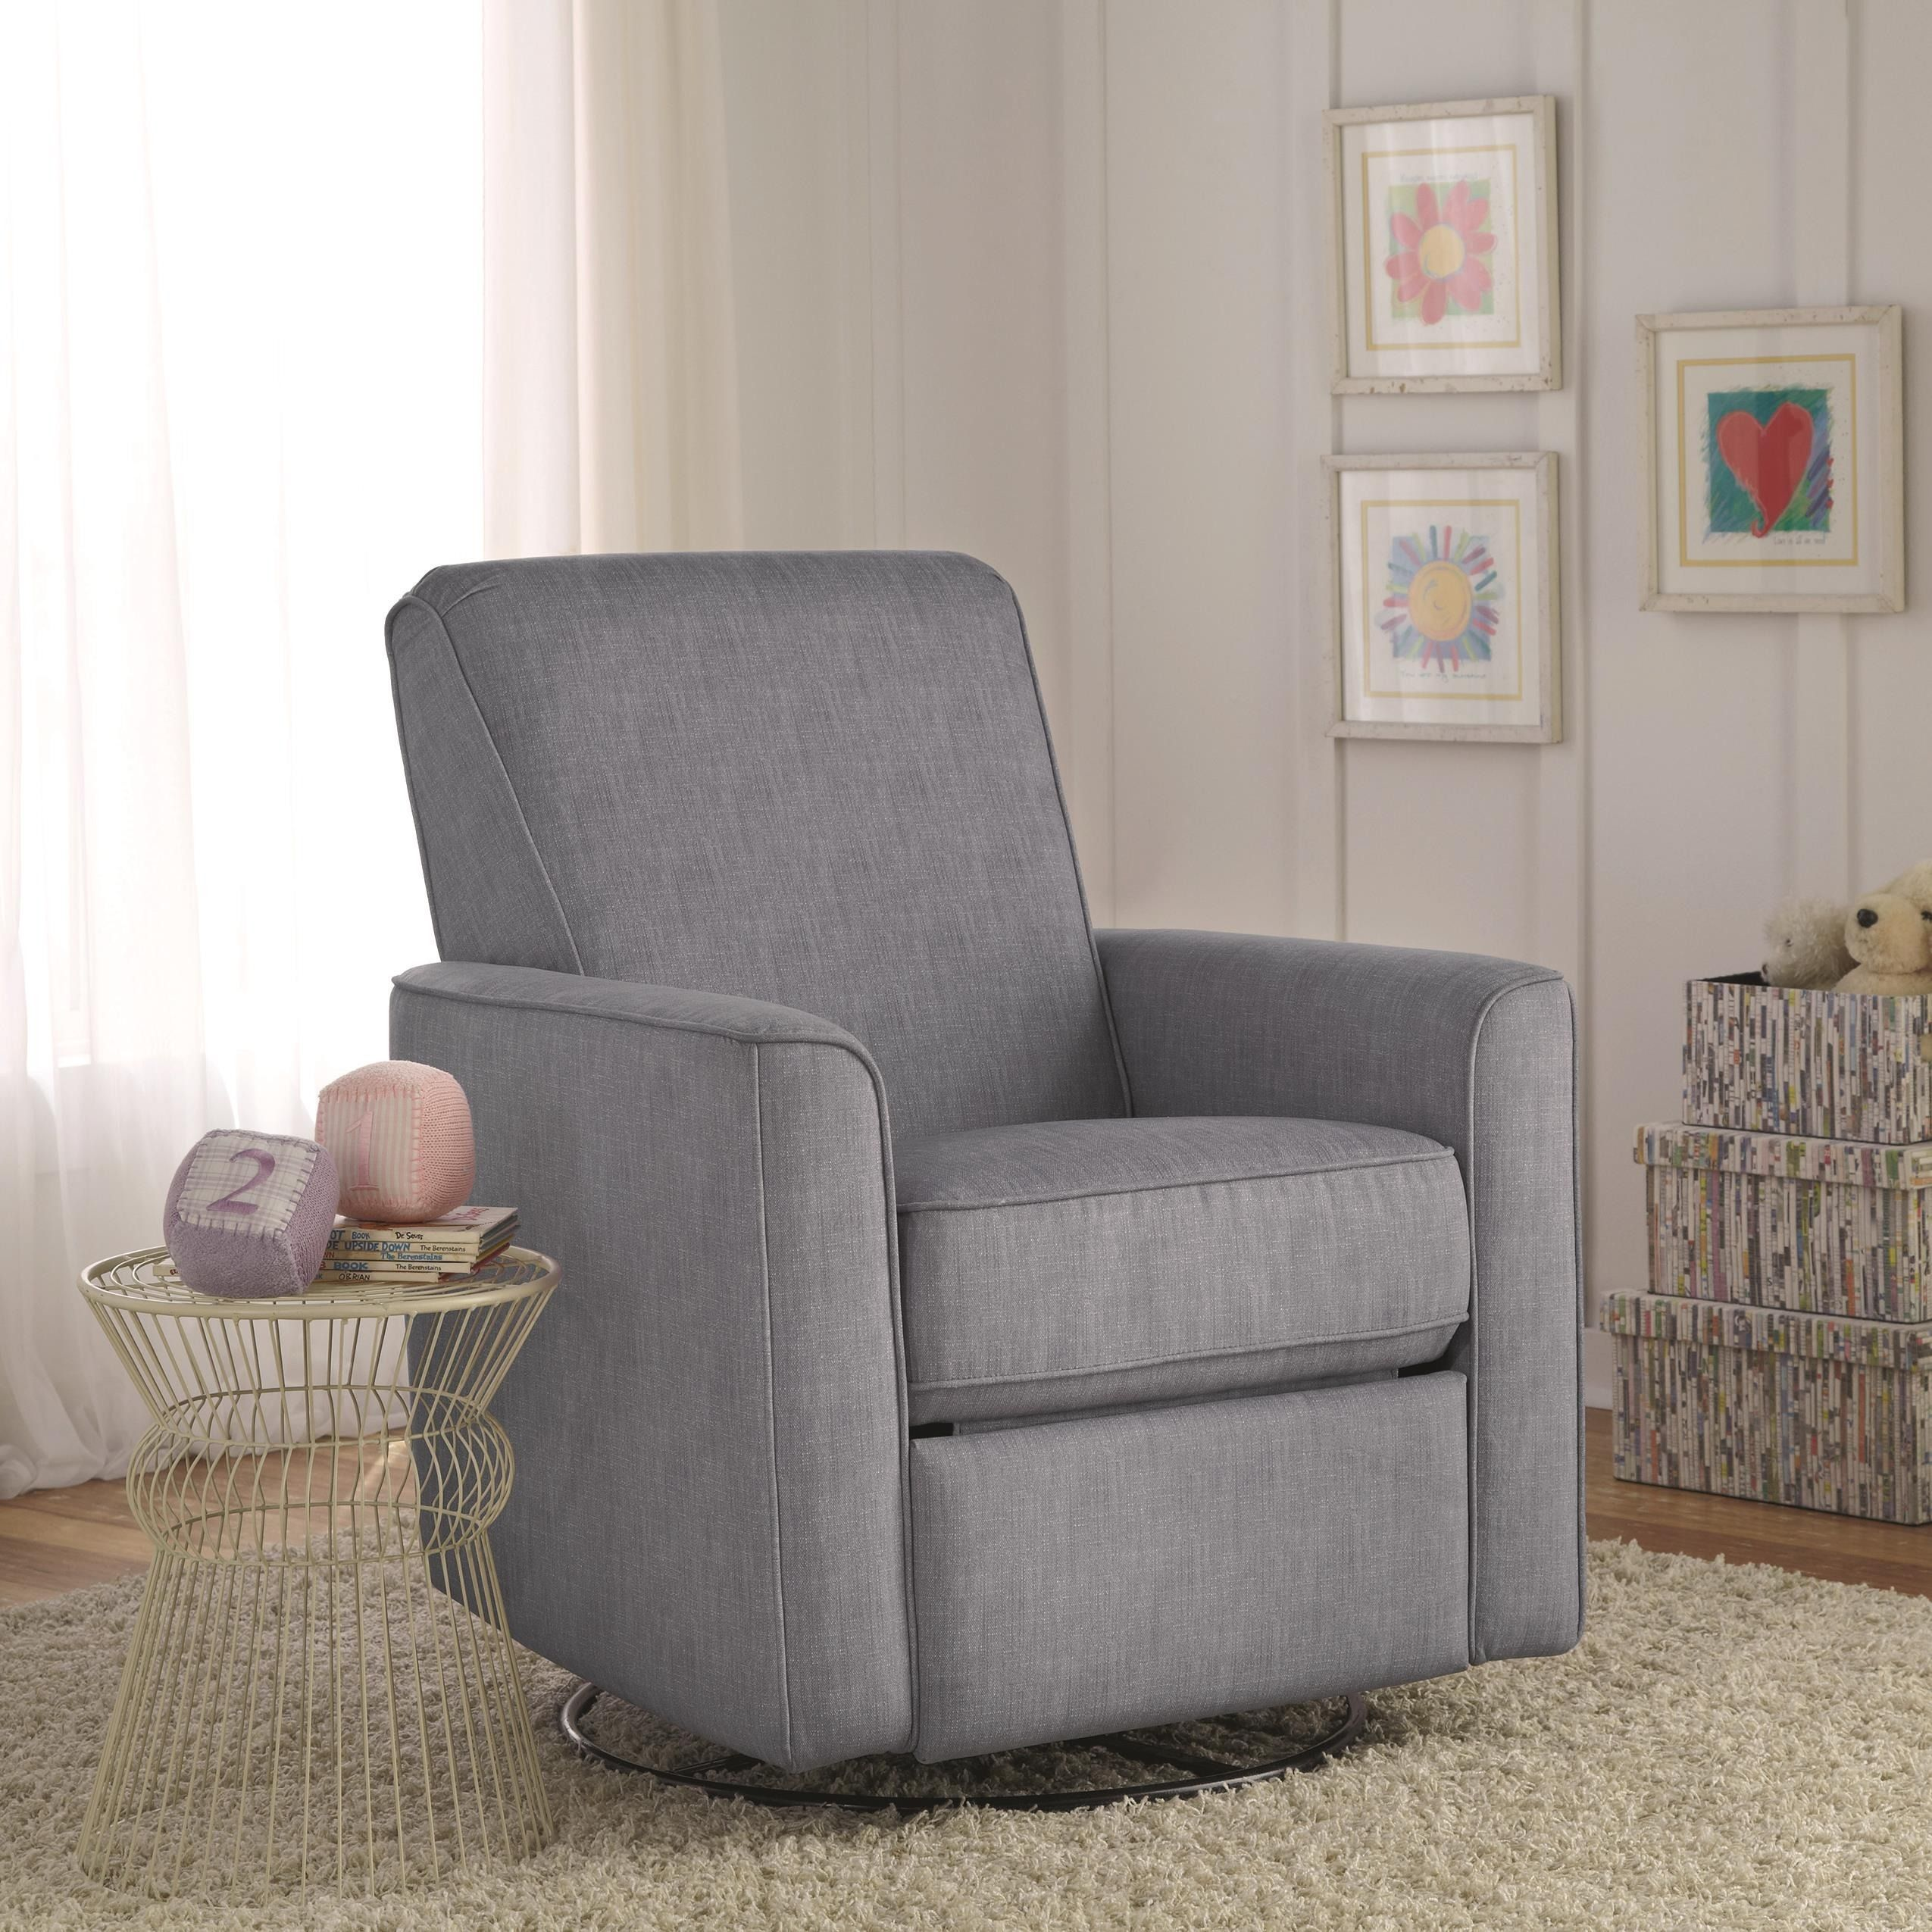 Gray Recliner Chair Zoey Grey Nursery Swivel Glider Recliner Chair Is